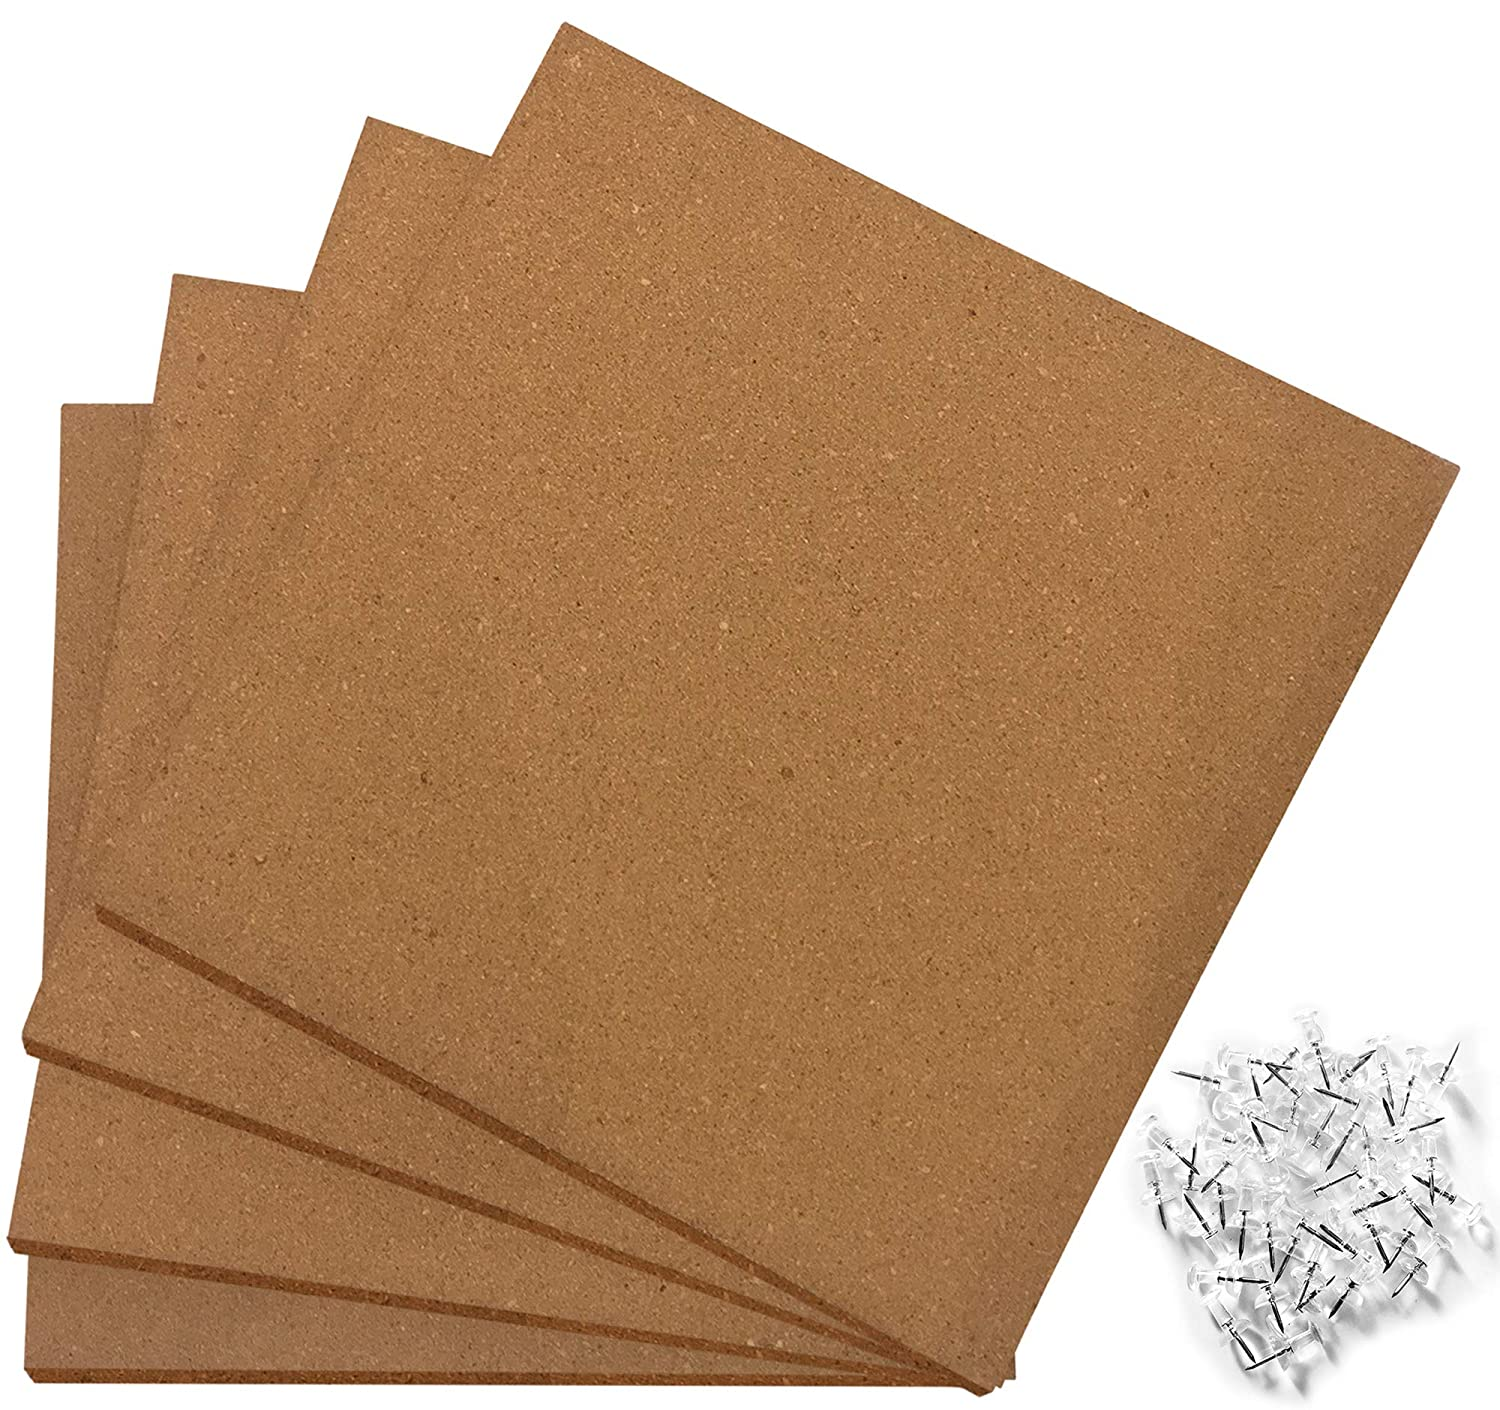 Premium Cork Tiles 12 x 12 - Extra Thick - 50 Push Pin Pack - Ultra Strong Self Adhesive Backing - 4 Pack - Cork Board - Bulletin Board - Mini Wall Classic Mules